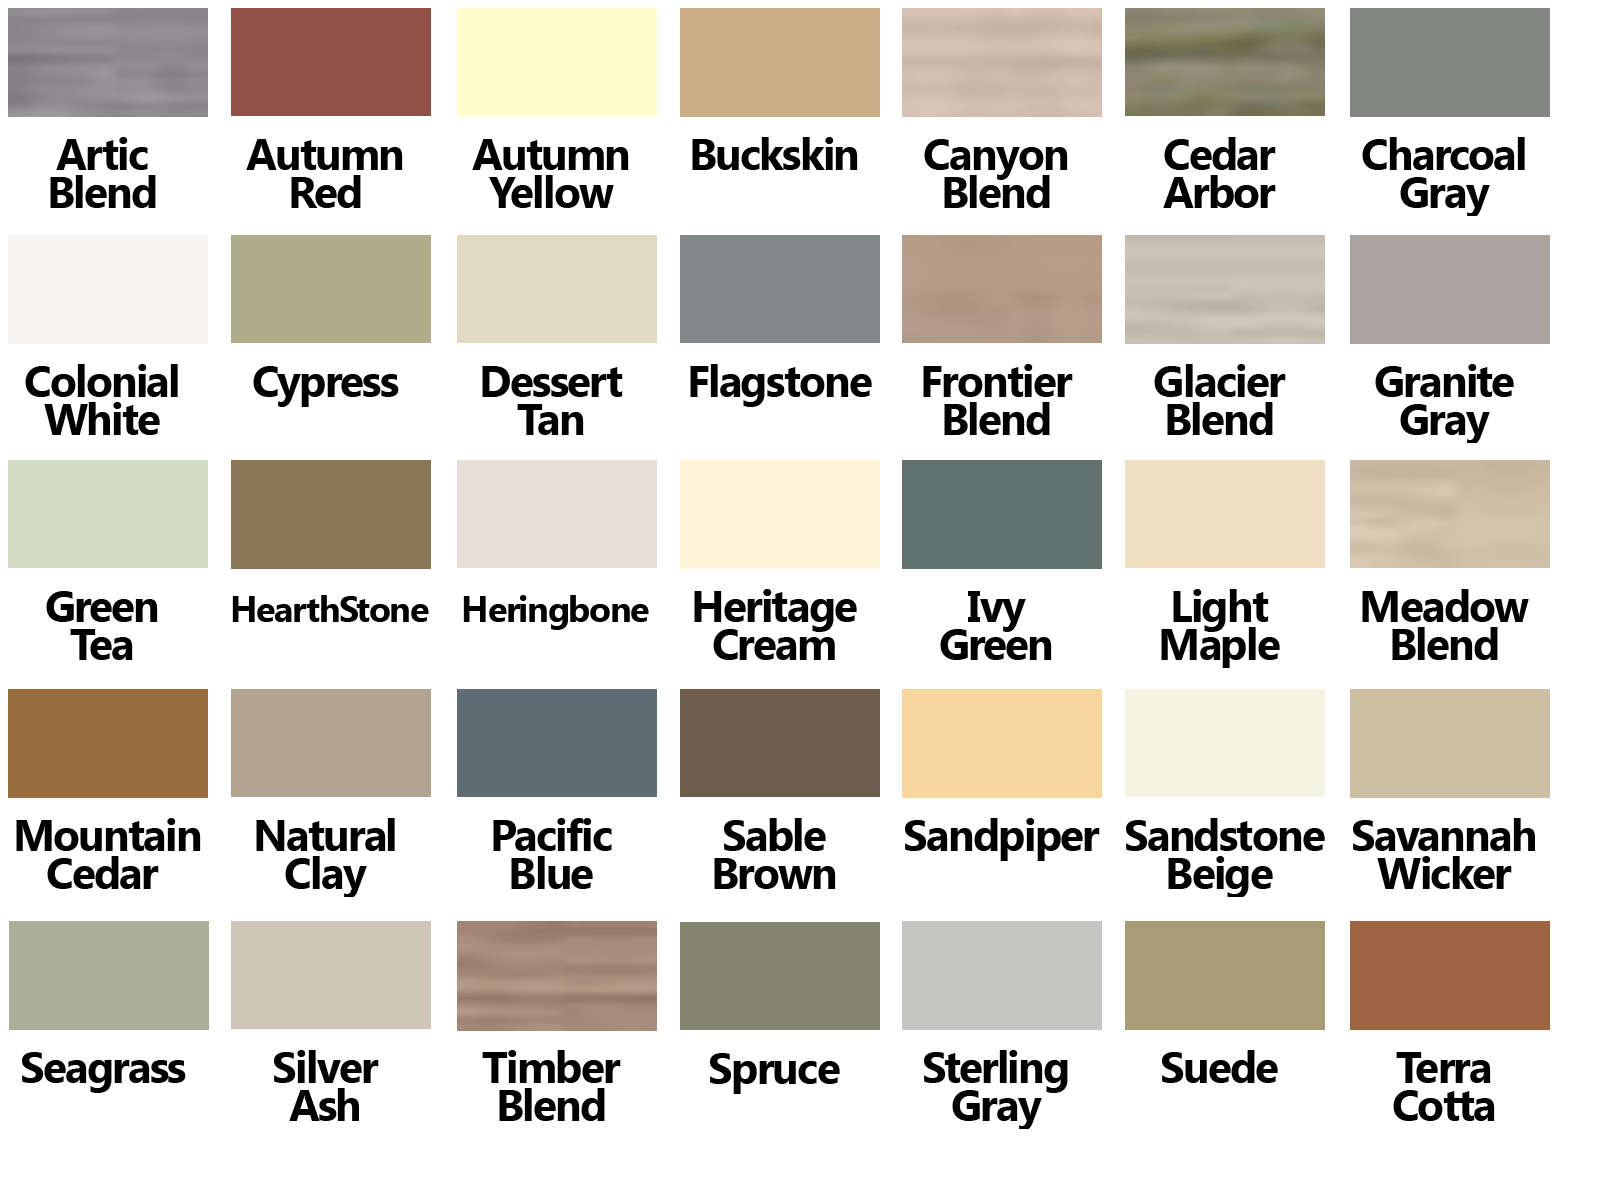 Certainteed vinyl siding color chart for the beach house for New vinyl siding colors